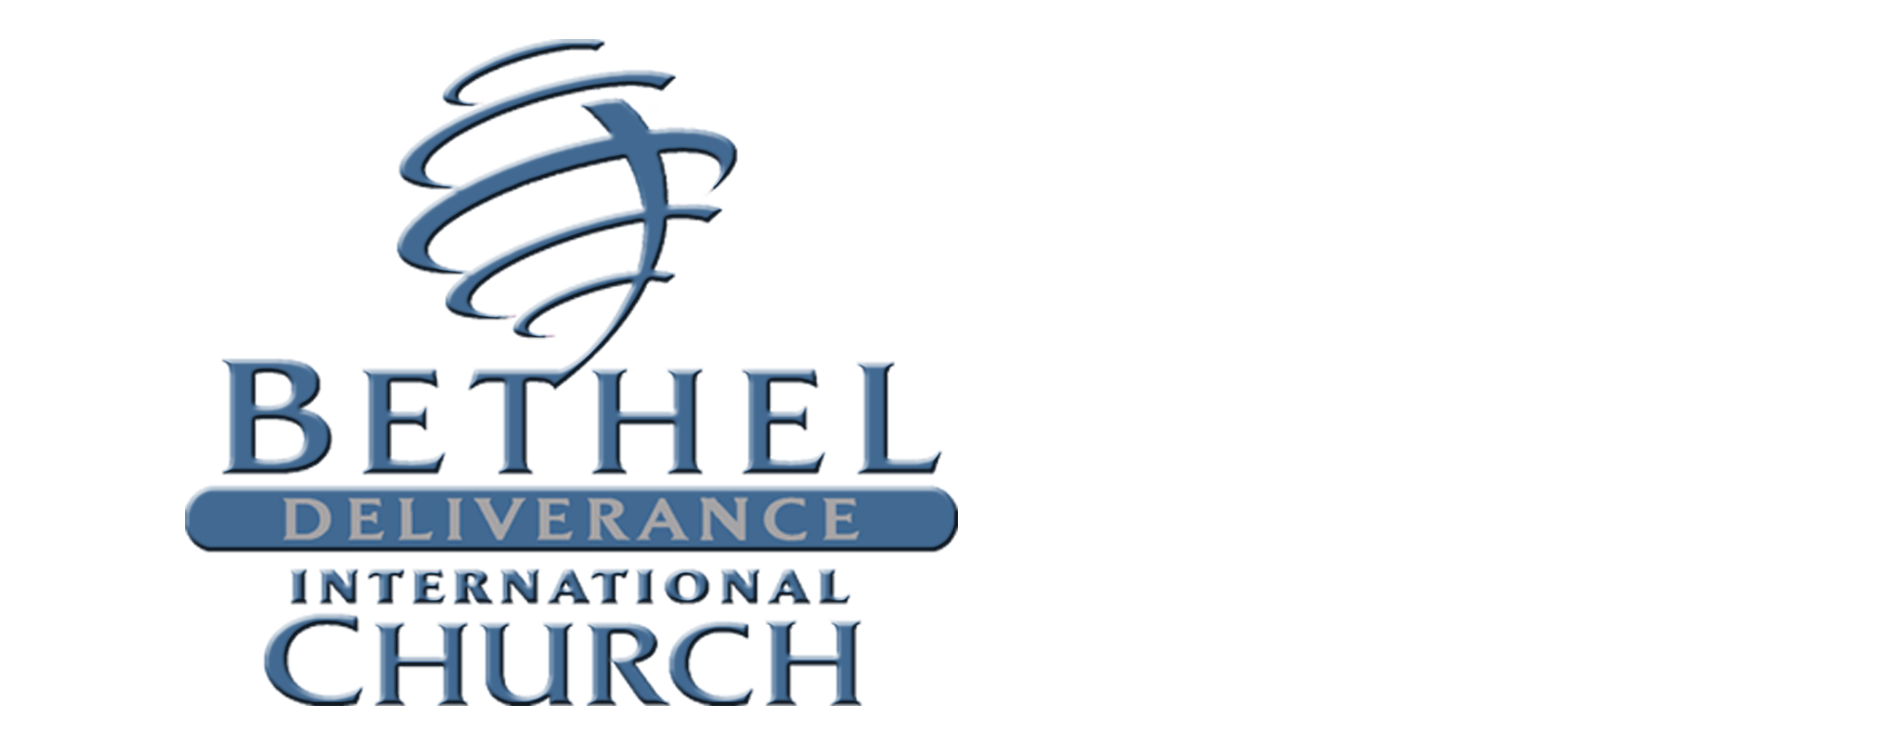 Bethel Deliverance International Church Footer Logo